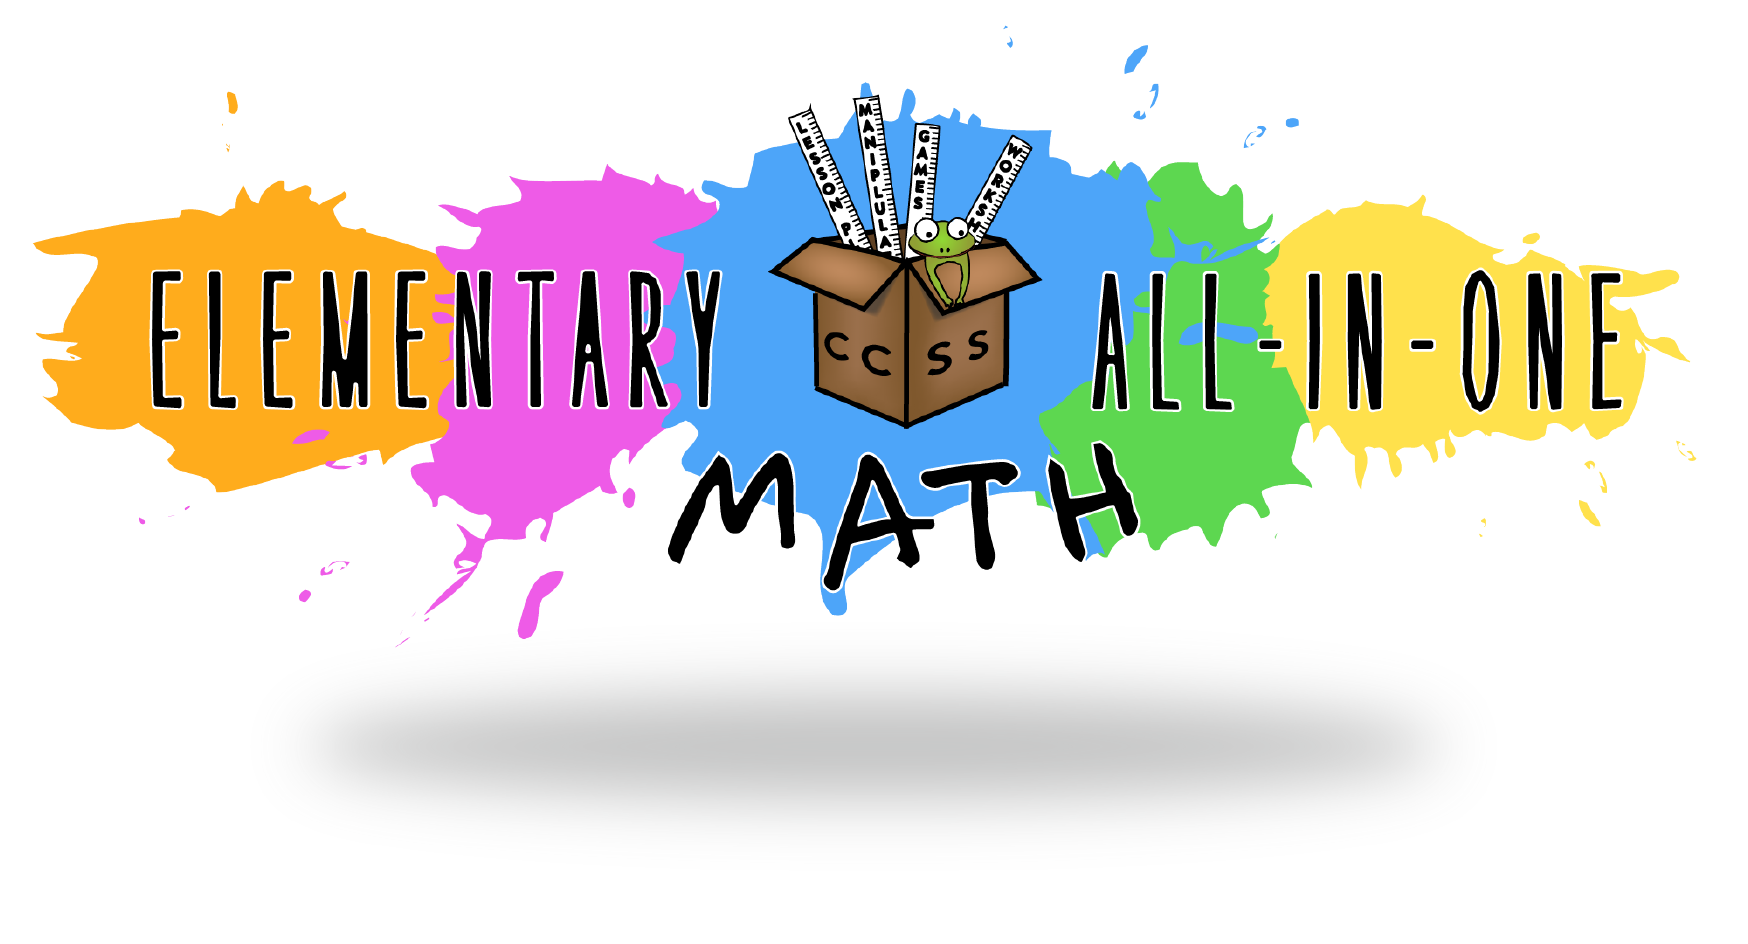 Brand identity and logo design for elementary math